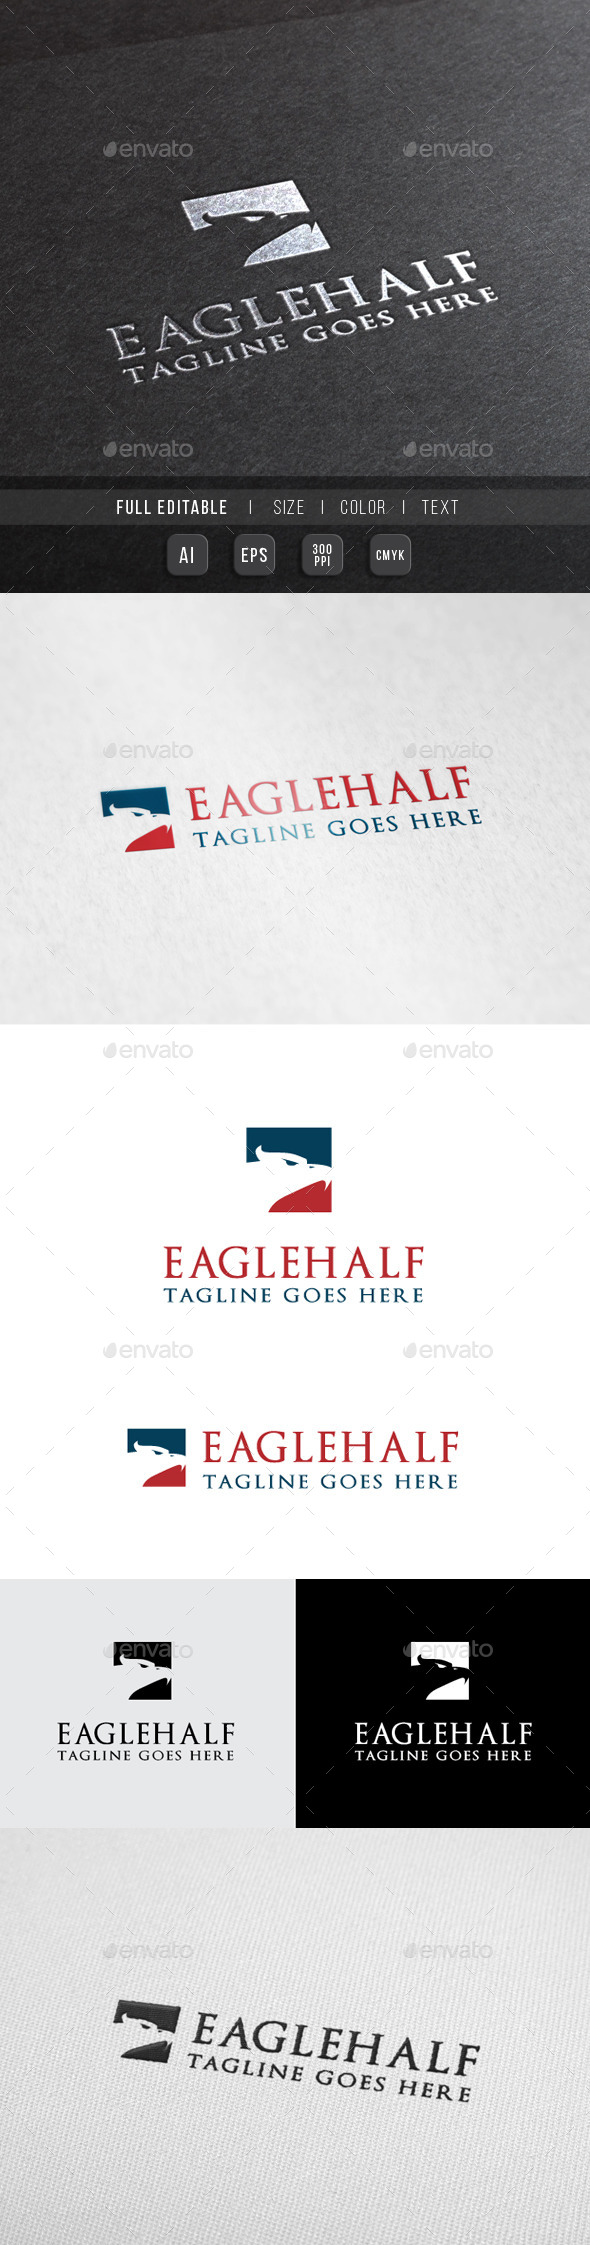 GraphicRiver Eagle Finance Tour Travel Logo 10067159